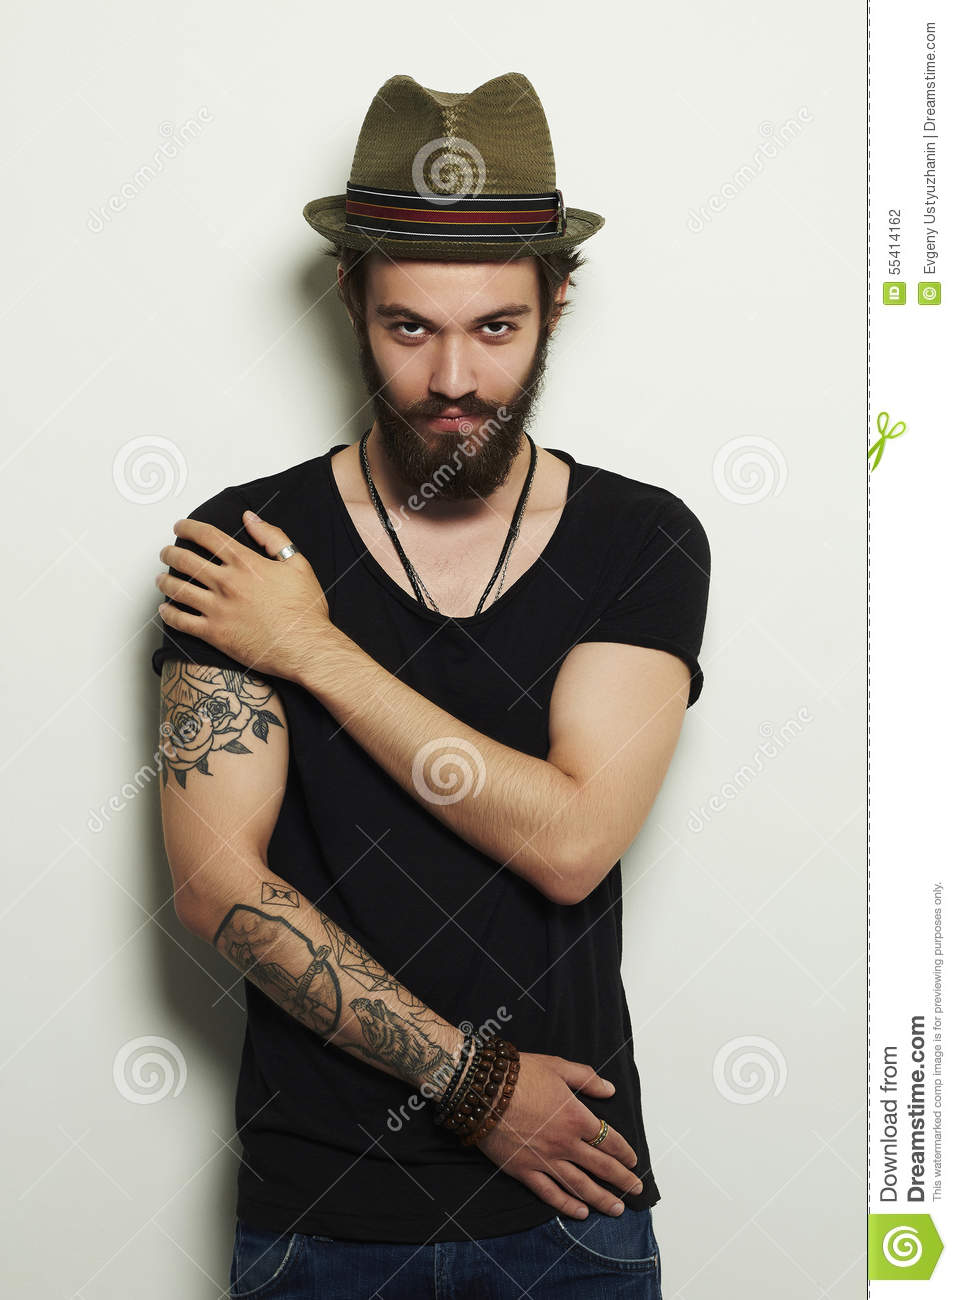 Handsome Bearded Man In HatBrutal Boy With Tattoo Stock